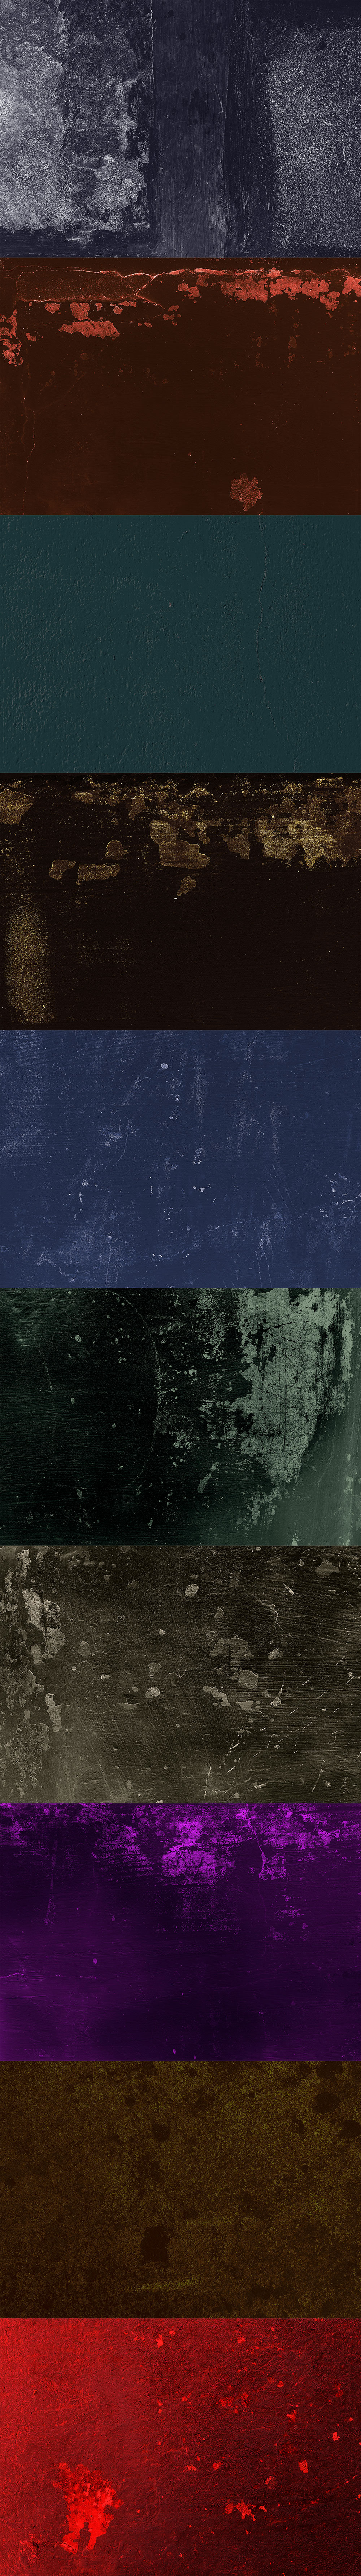 Free Dramatic Color Grunge Textures